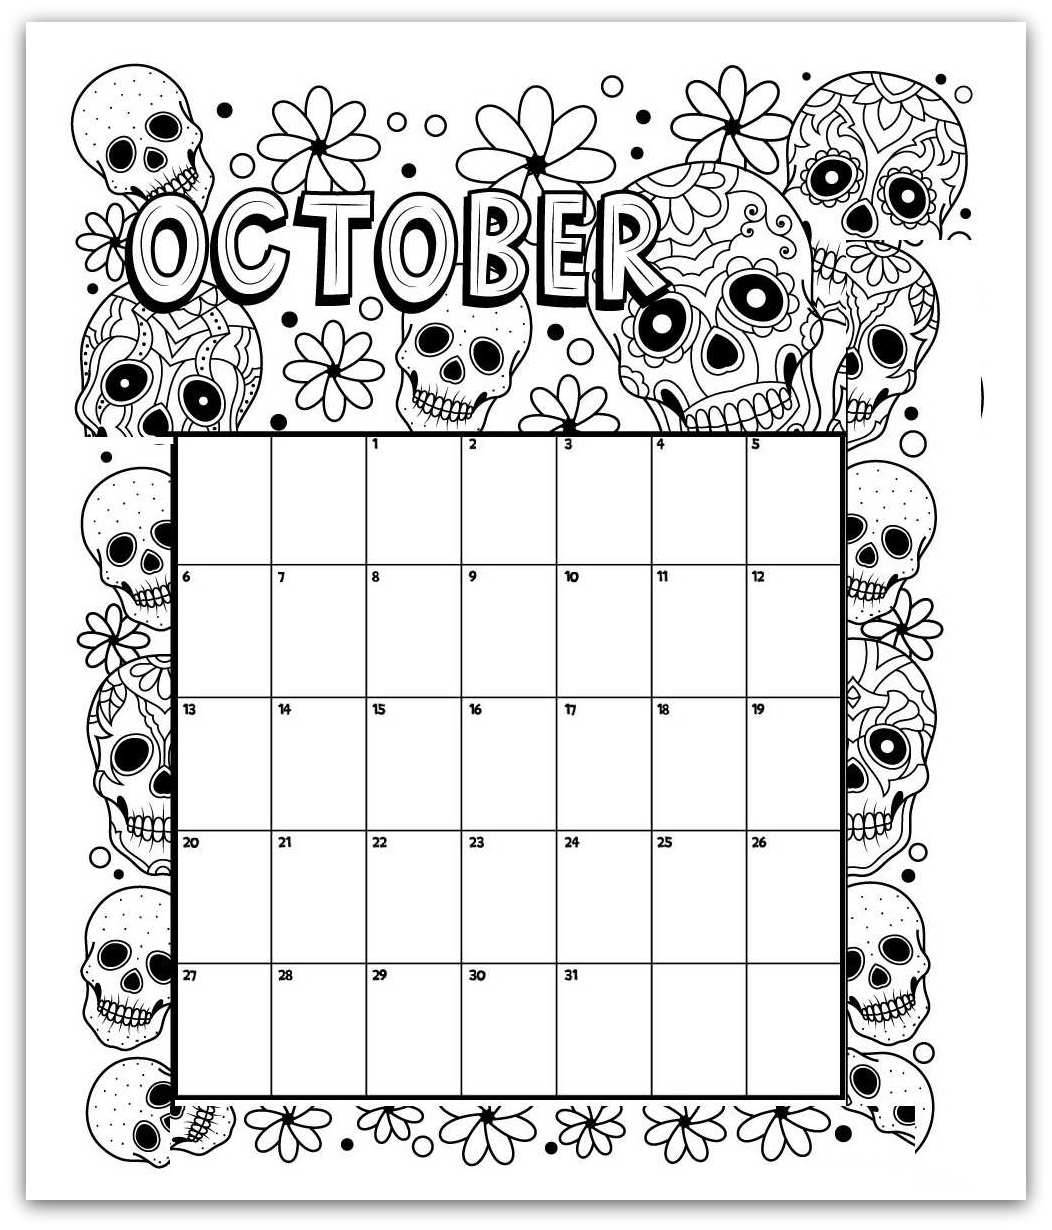 October 2019 Coloring Page Printable Calendar